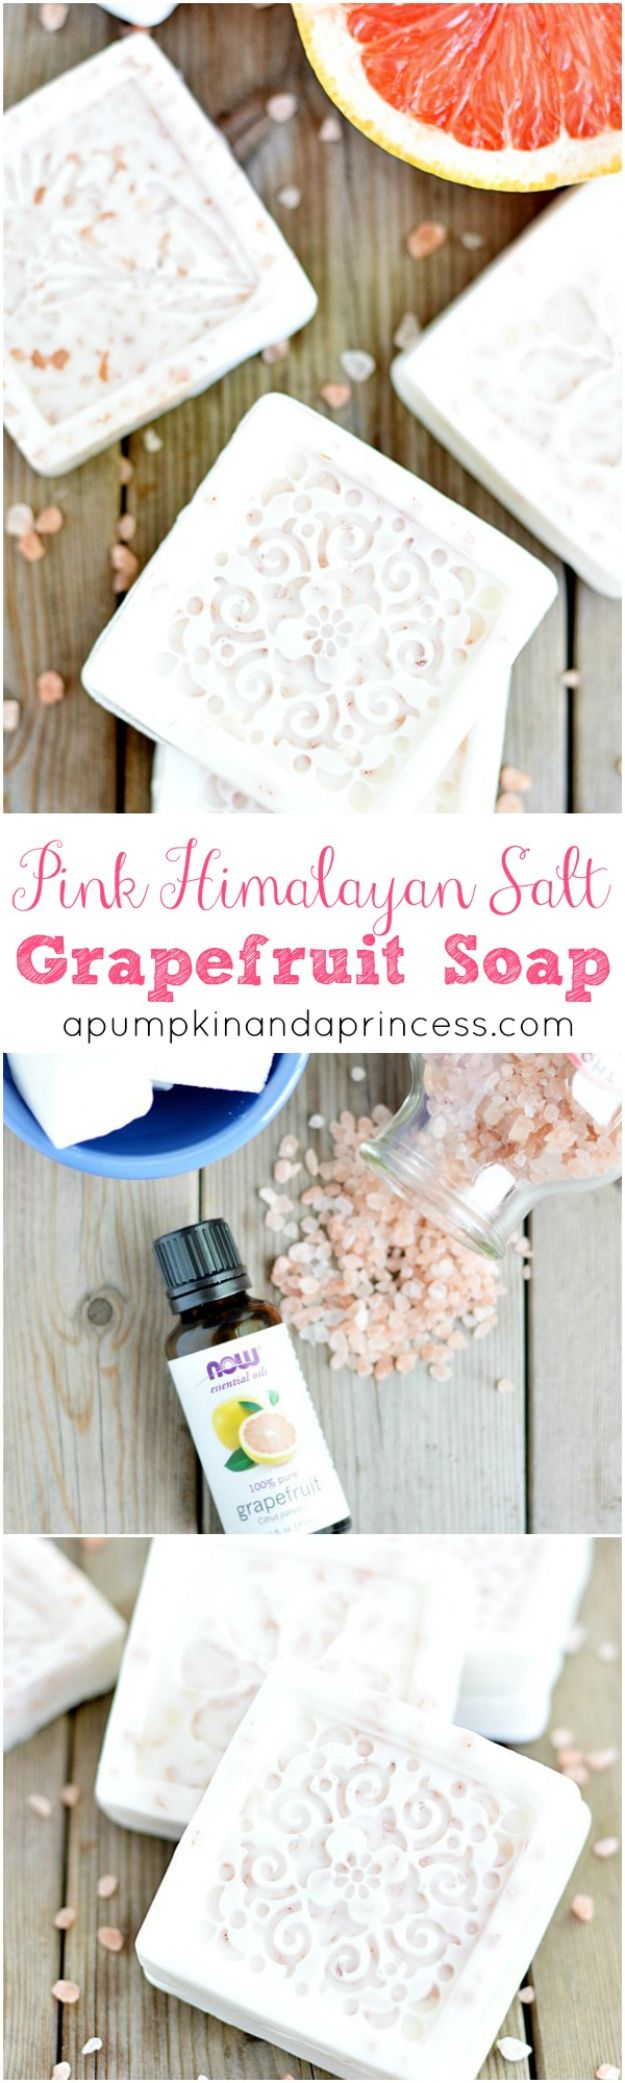 DIY Soap Recipes - Pink Himalayan Salt Grapefruit Soap - Melt and Pour, Homemade Recipe Without Lye - Natural Soap crafts for Kids - Shea Butter, Essential Oils, Easy Ides With 3 Ingredients - soap recipes with step by step tutorials #soap #diygifts